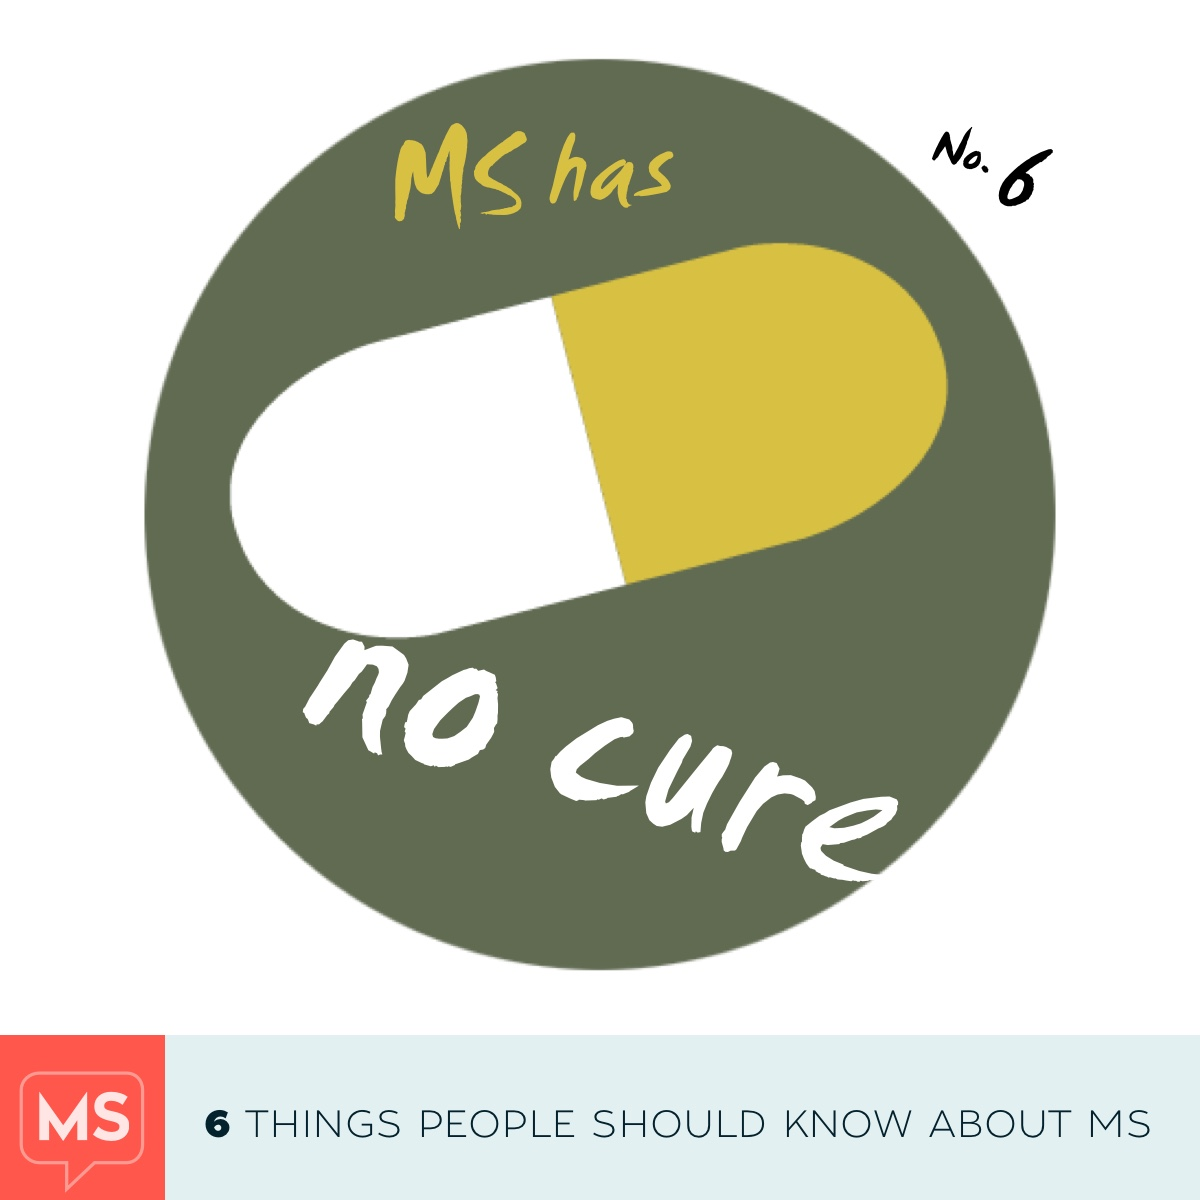 Six things people should know about MS